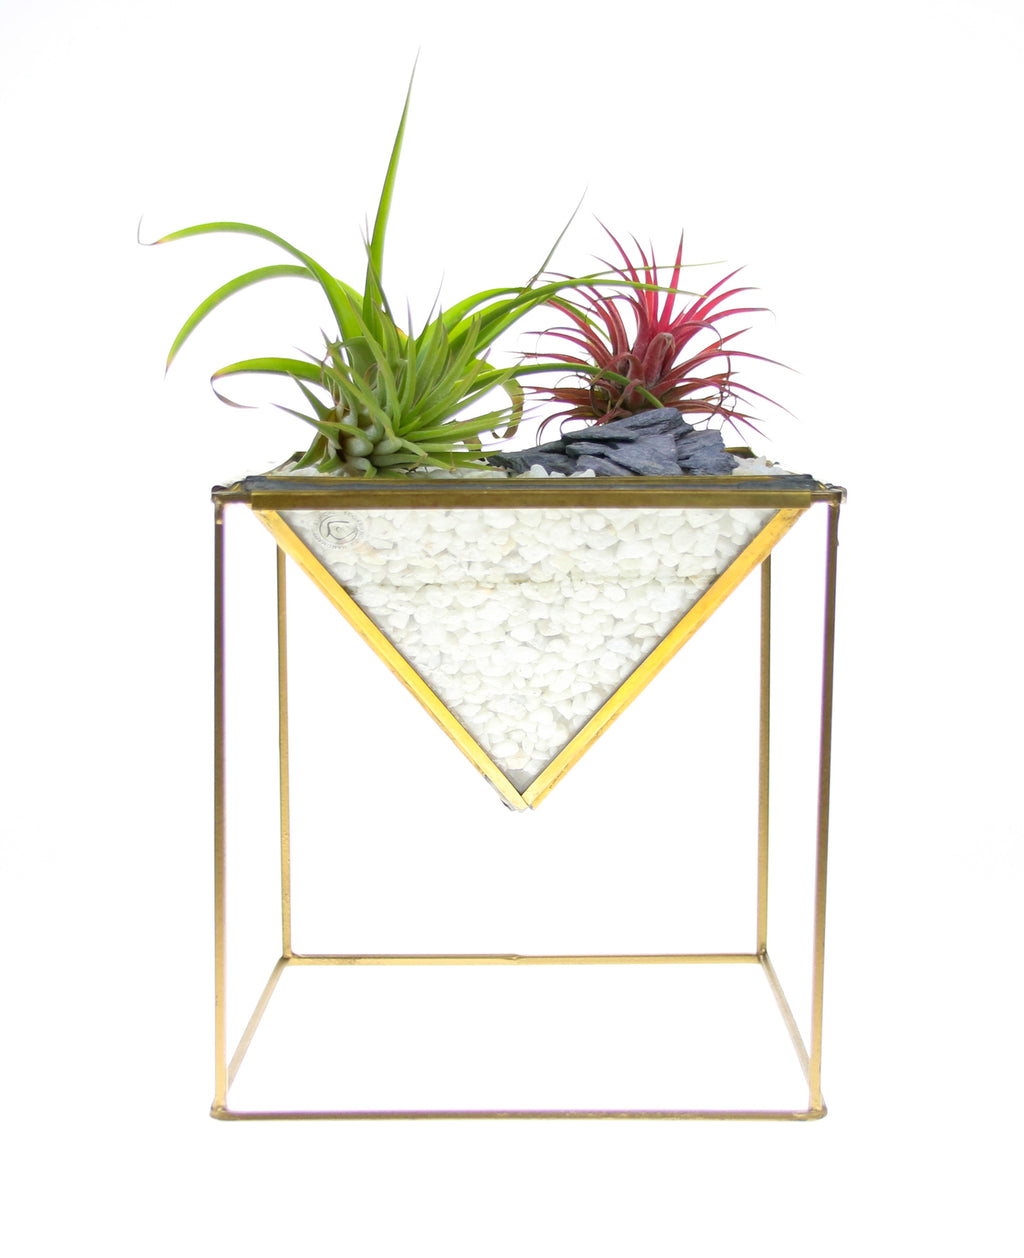 Planter with air plants